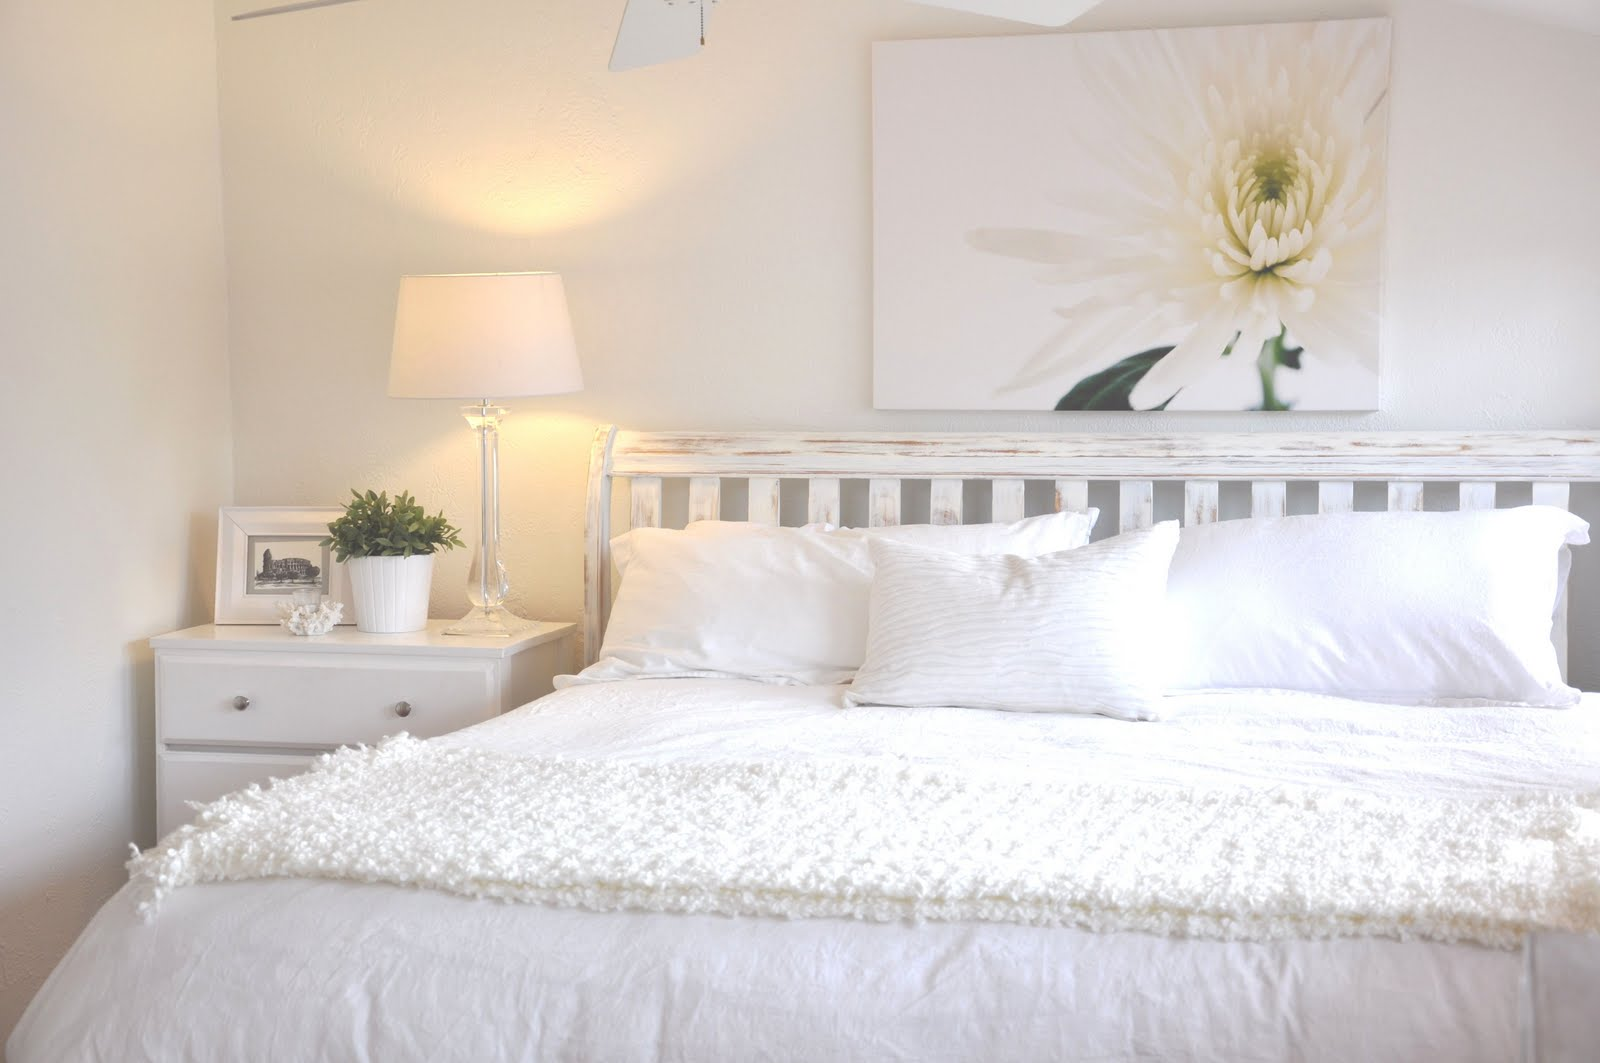 Top Bedroom Decorating Ideas White Furniture Room Decorating Ideas And White Bedroom Ideas By White Bedroom The Digiorgio Team Homes For Sale In Arlington Ma Real Estate Wakefield Ma Real Estate Somerville Ma Real Esate Meford Ma Real Estate